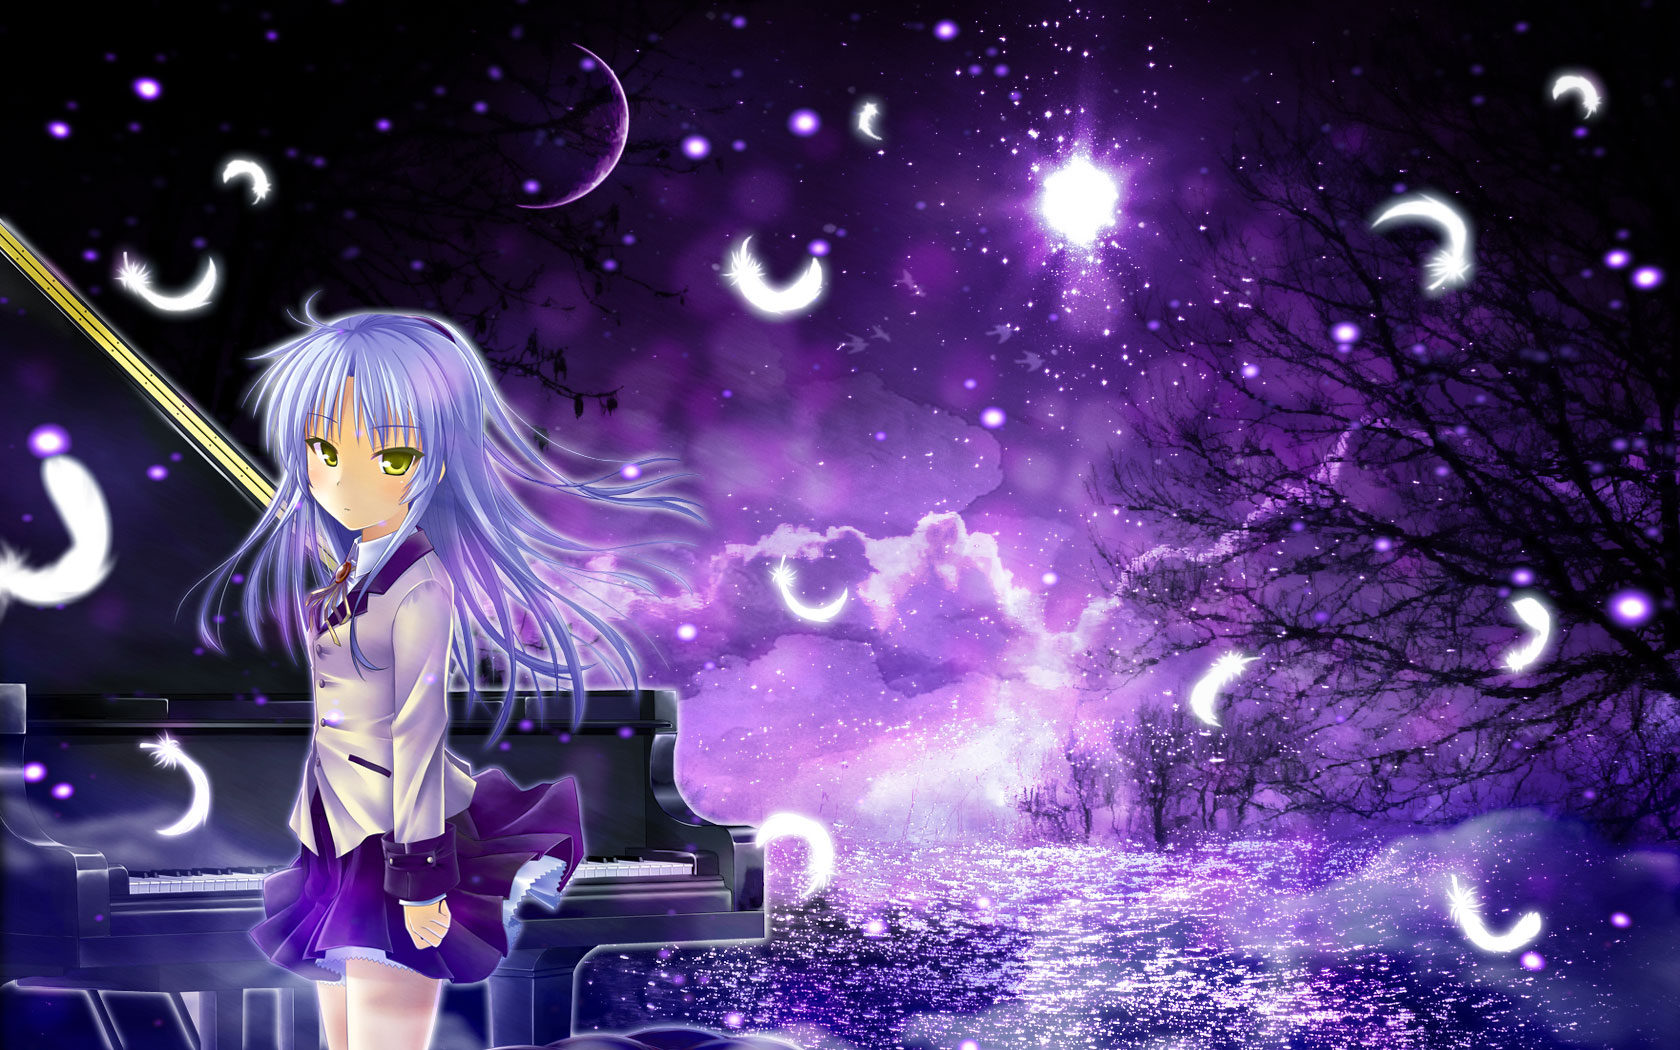 Angel Beats! Wallpaper and Background Image   1680x1050 ...